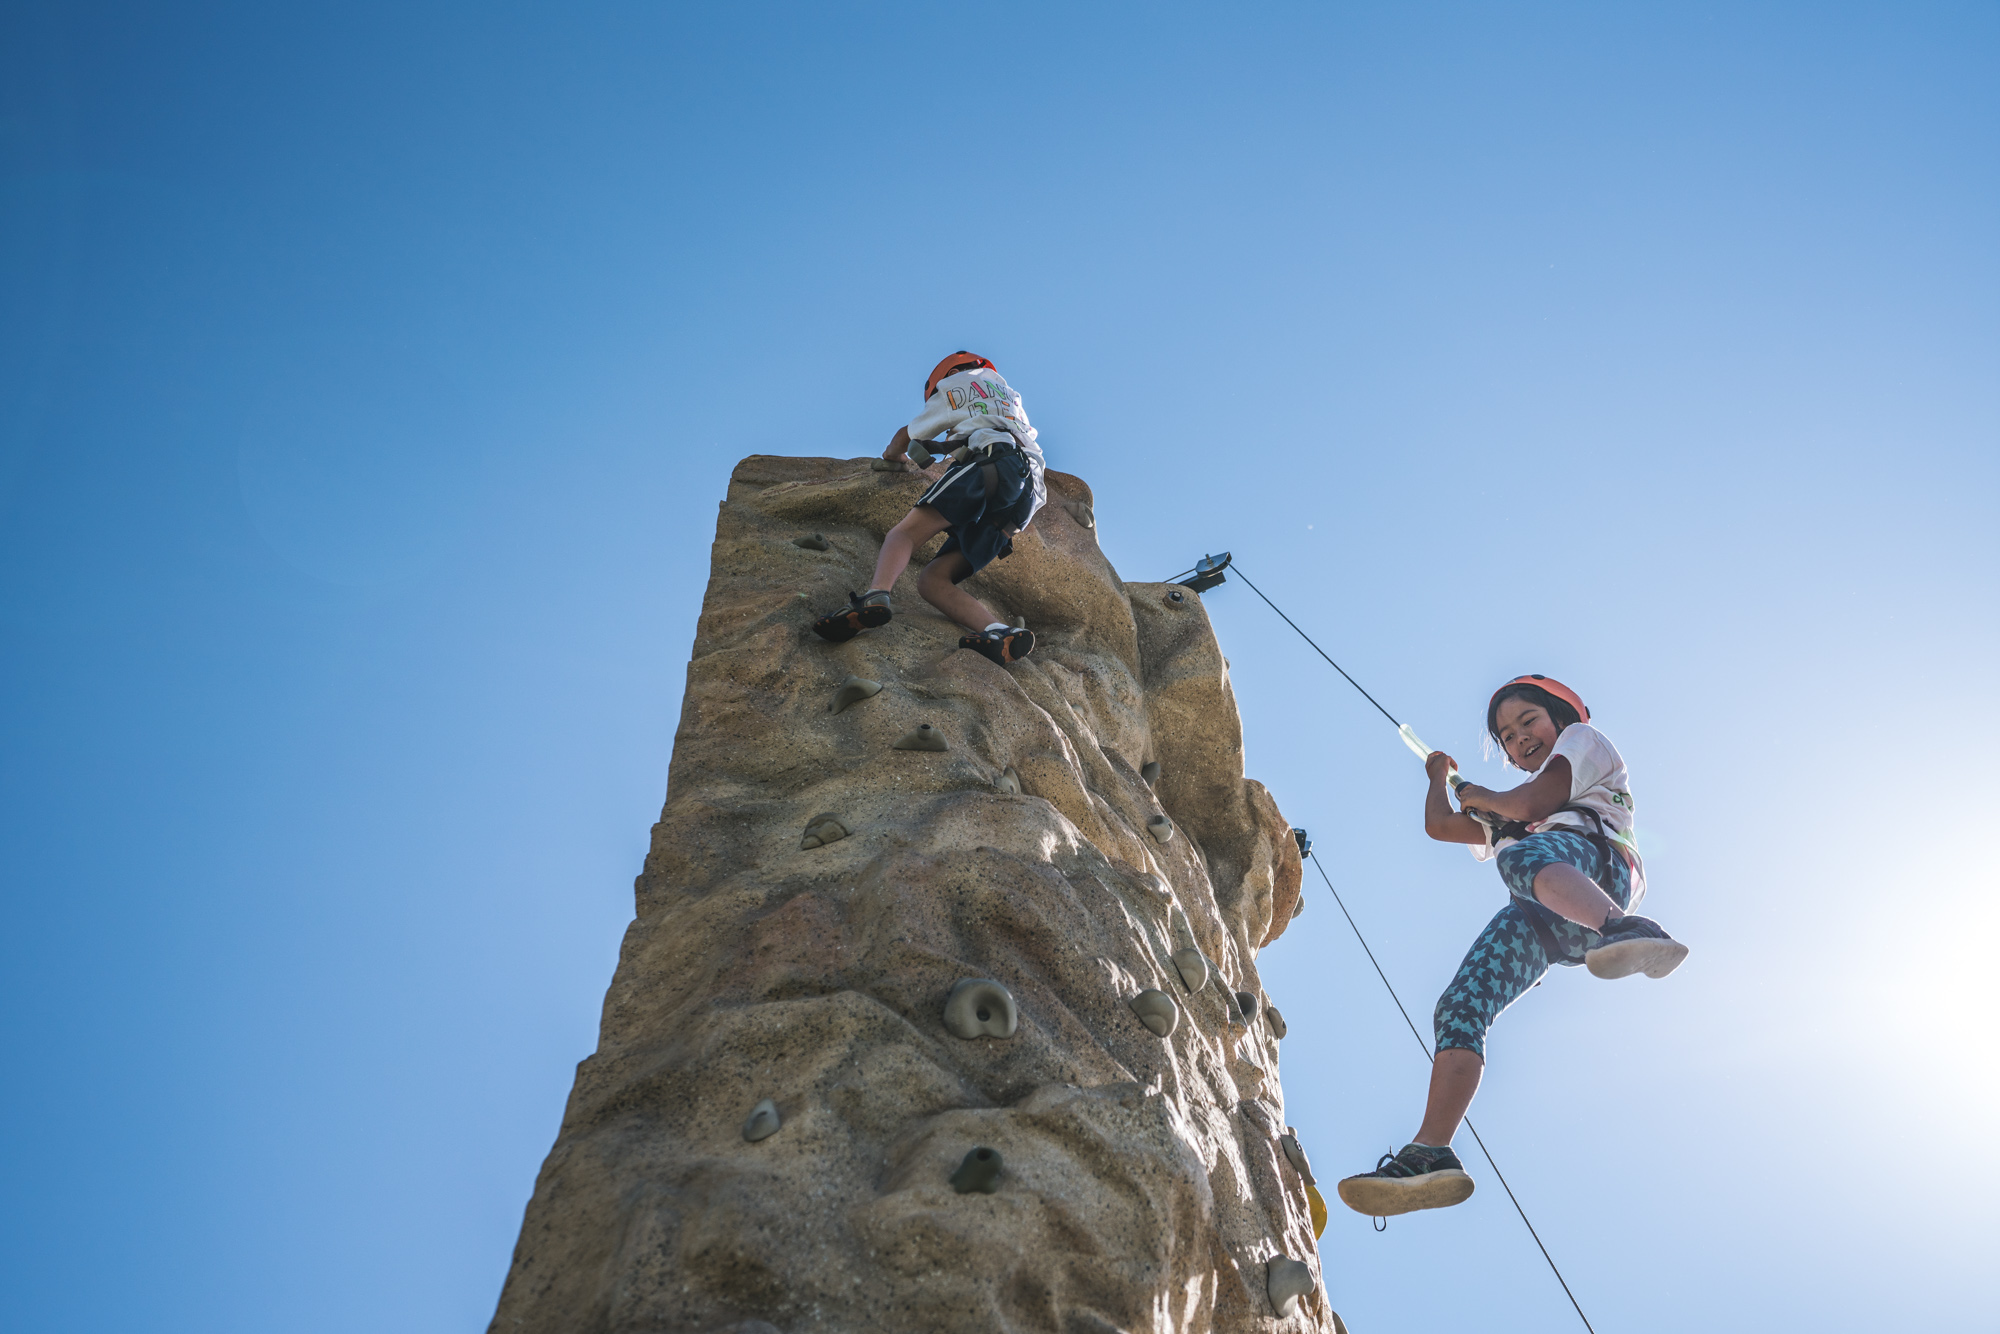 Photo of two children at the top of a rock climbing wall, with the little girl repelling down